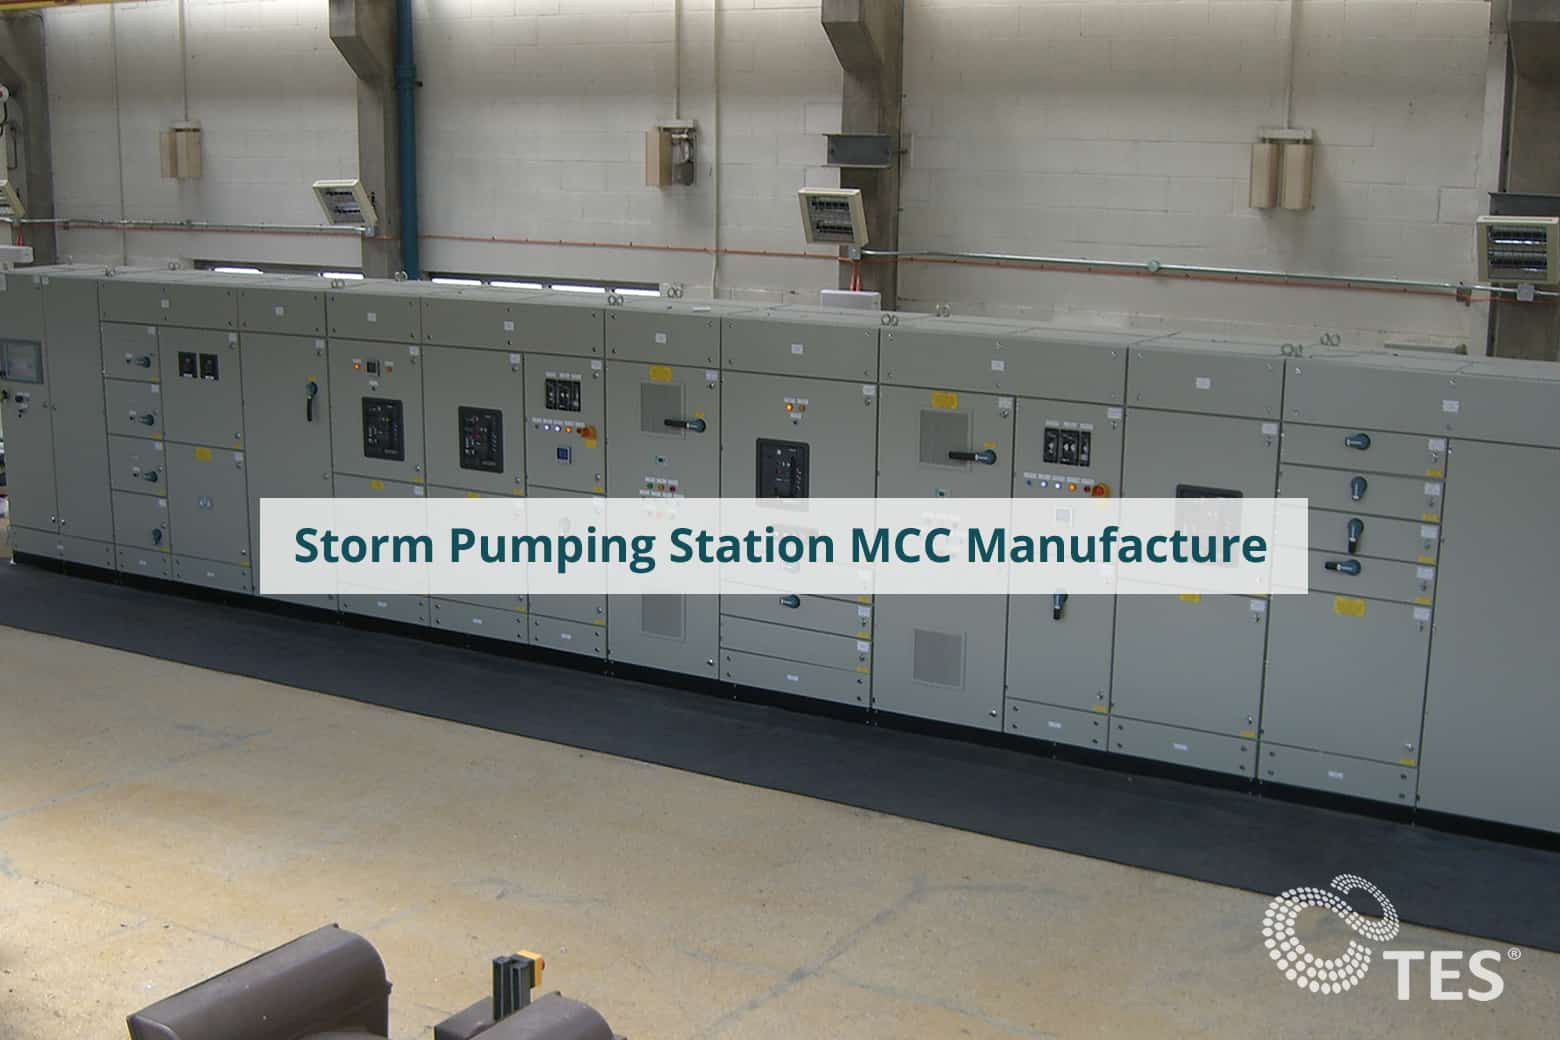 Storm Pumping Station MCC Manufacture